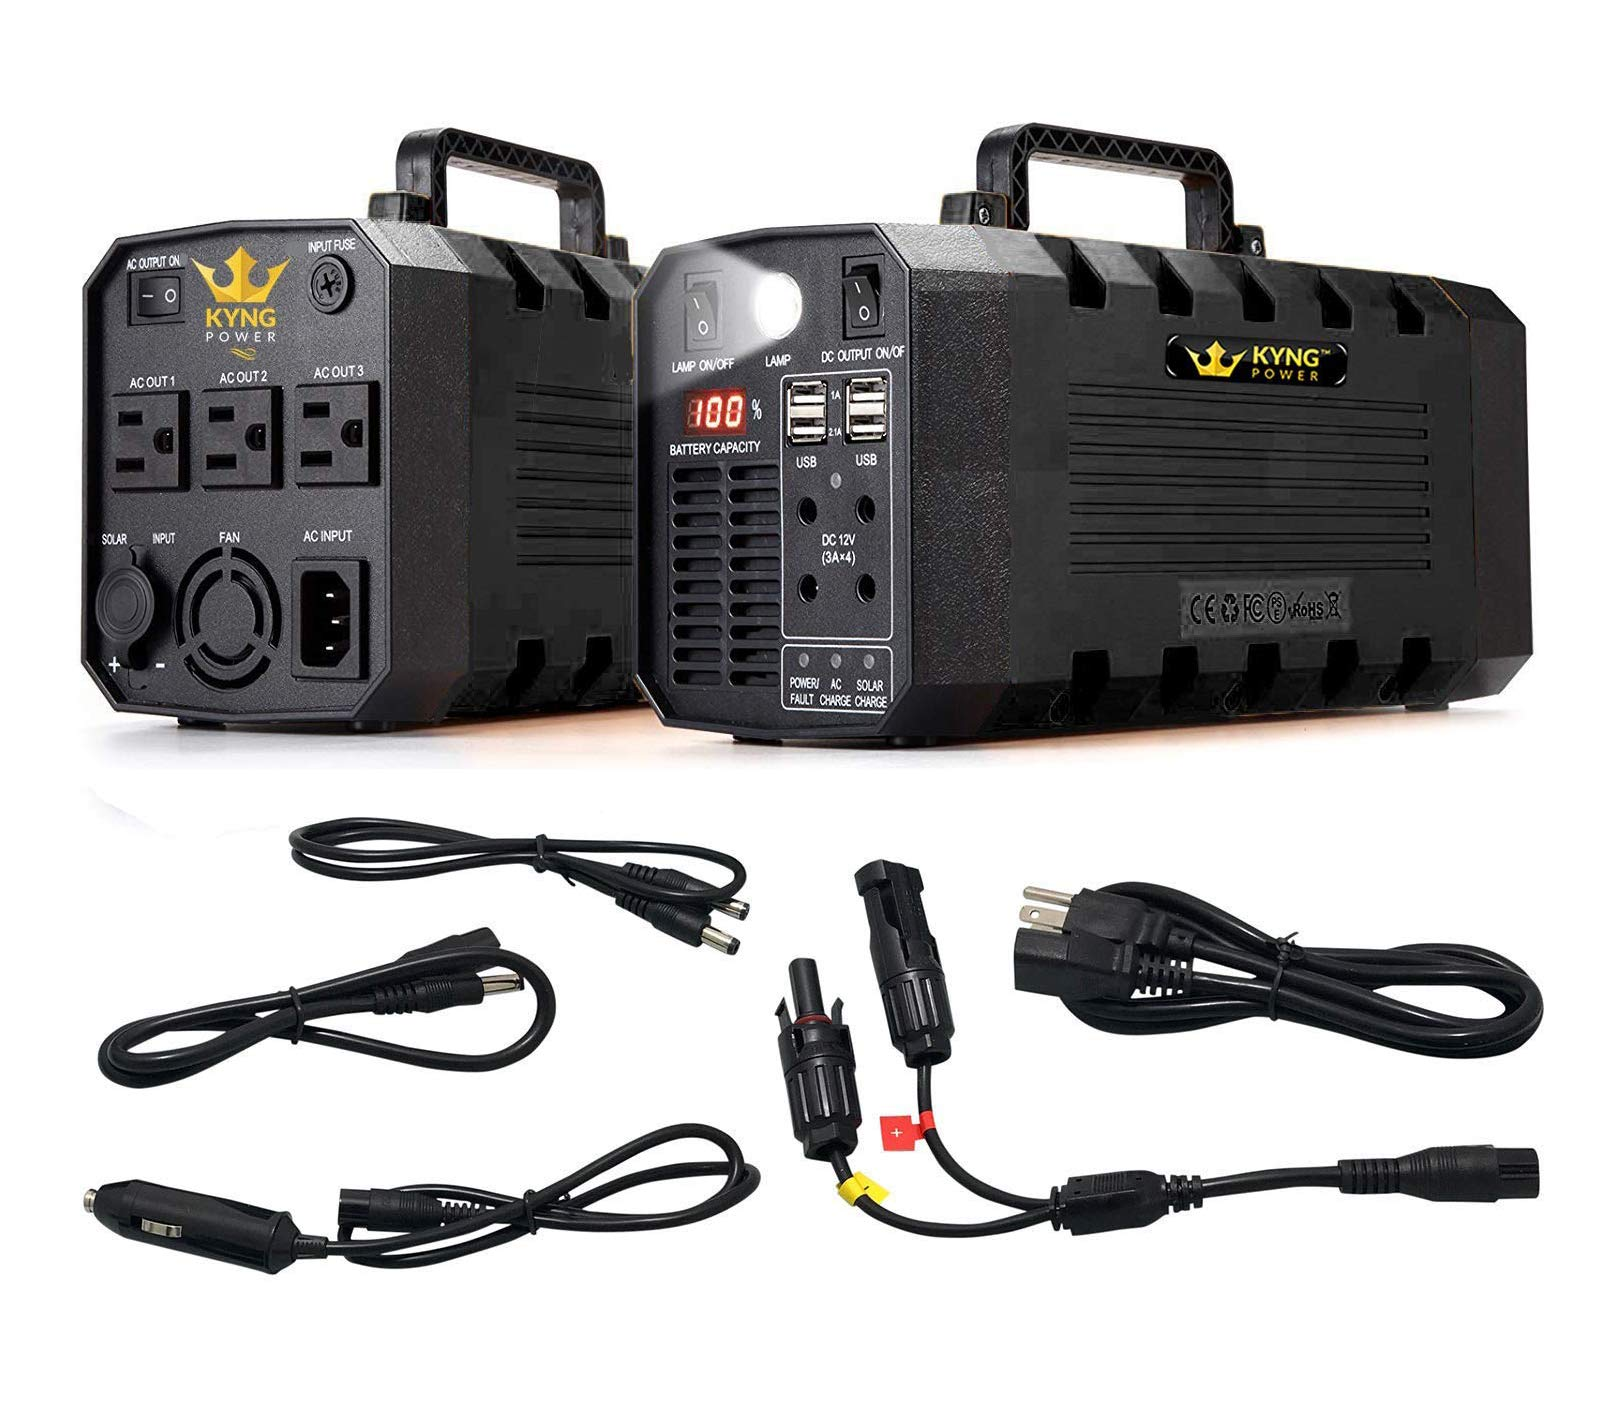 KYNG Power Solar Generator Portable Power Station 500W UPS Battery for Emergency, Tradeshow Battery Powered Inverter 12V, 3 AC, 4 USB Outlets Free Solar Panel Cable, Camping, CPAP, 288wh